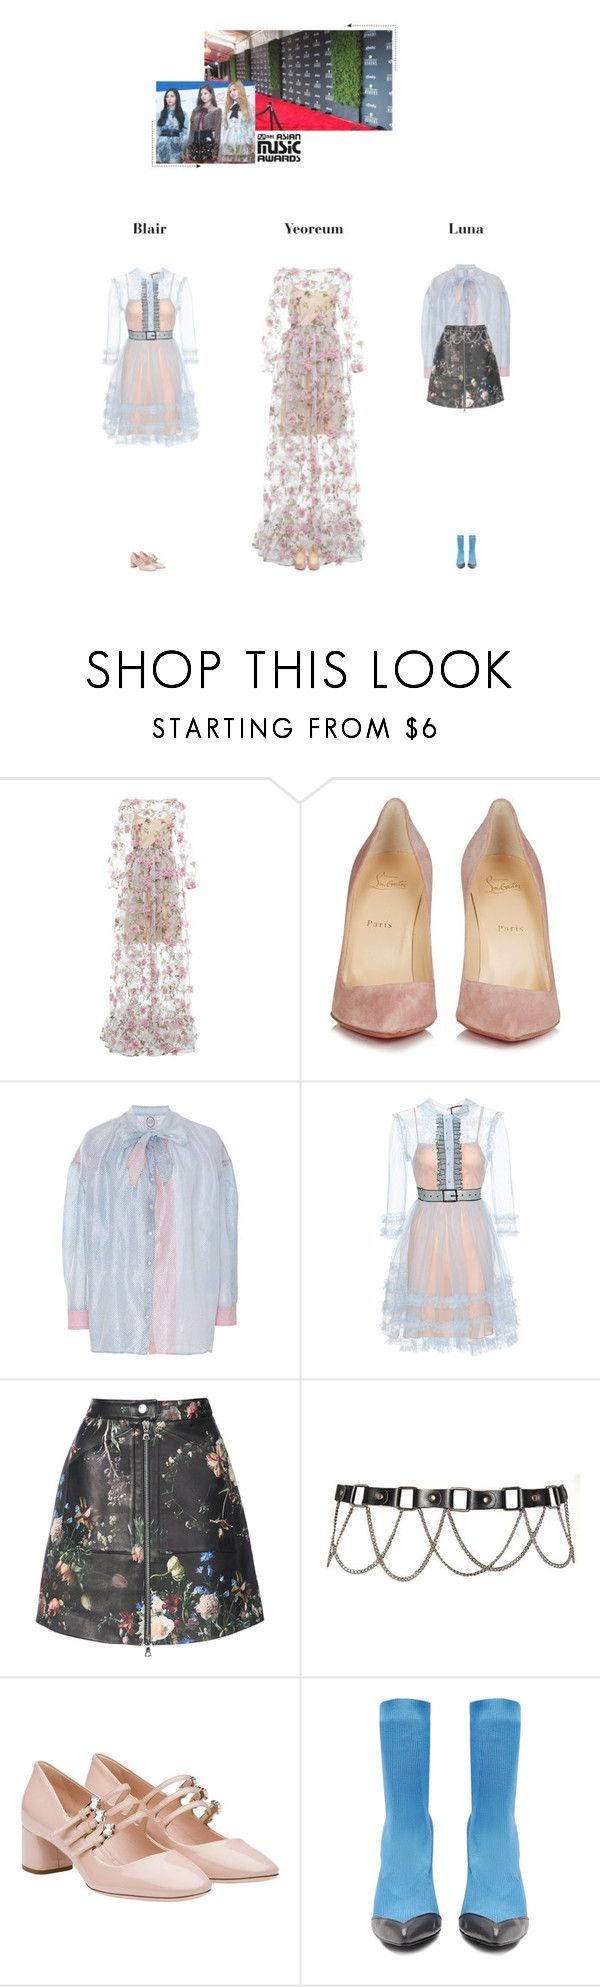 """""""— Heartbeat ♡ MAMA Awards 2017 / D-2"""" by heartbeat-official ❤ liked on Polyvore featuring Alcoolique, Christian Louboutin, Thierry Colson, Gucci, ADAM, Miu Miu, Toga, mama2017redcarpet and mama2017day2"""